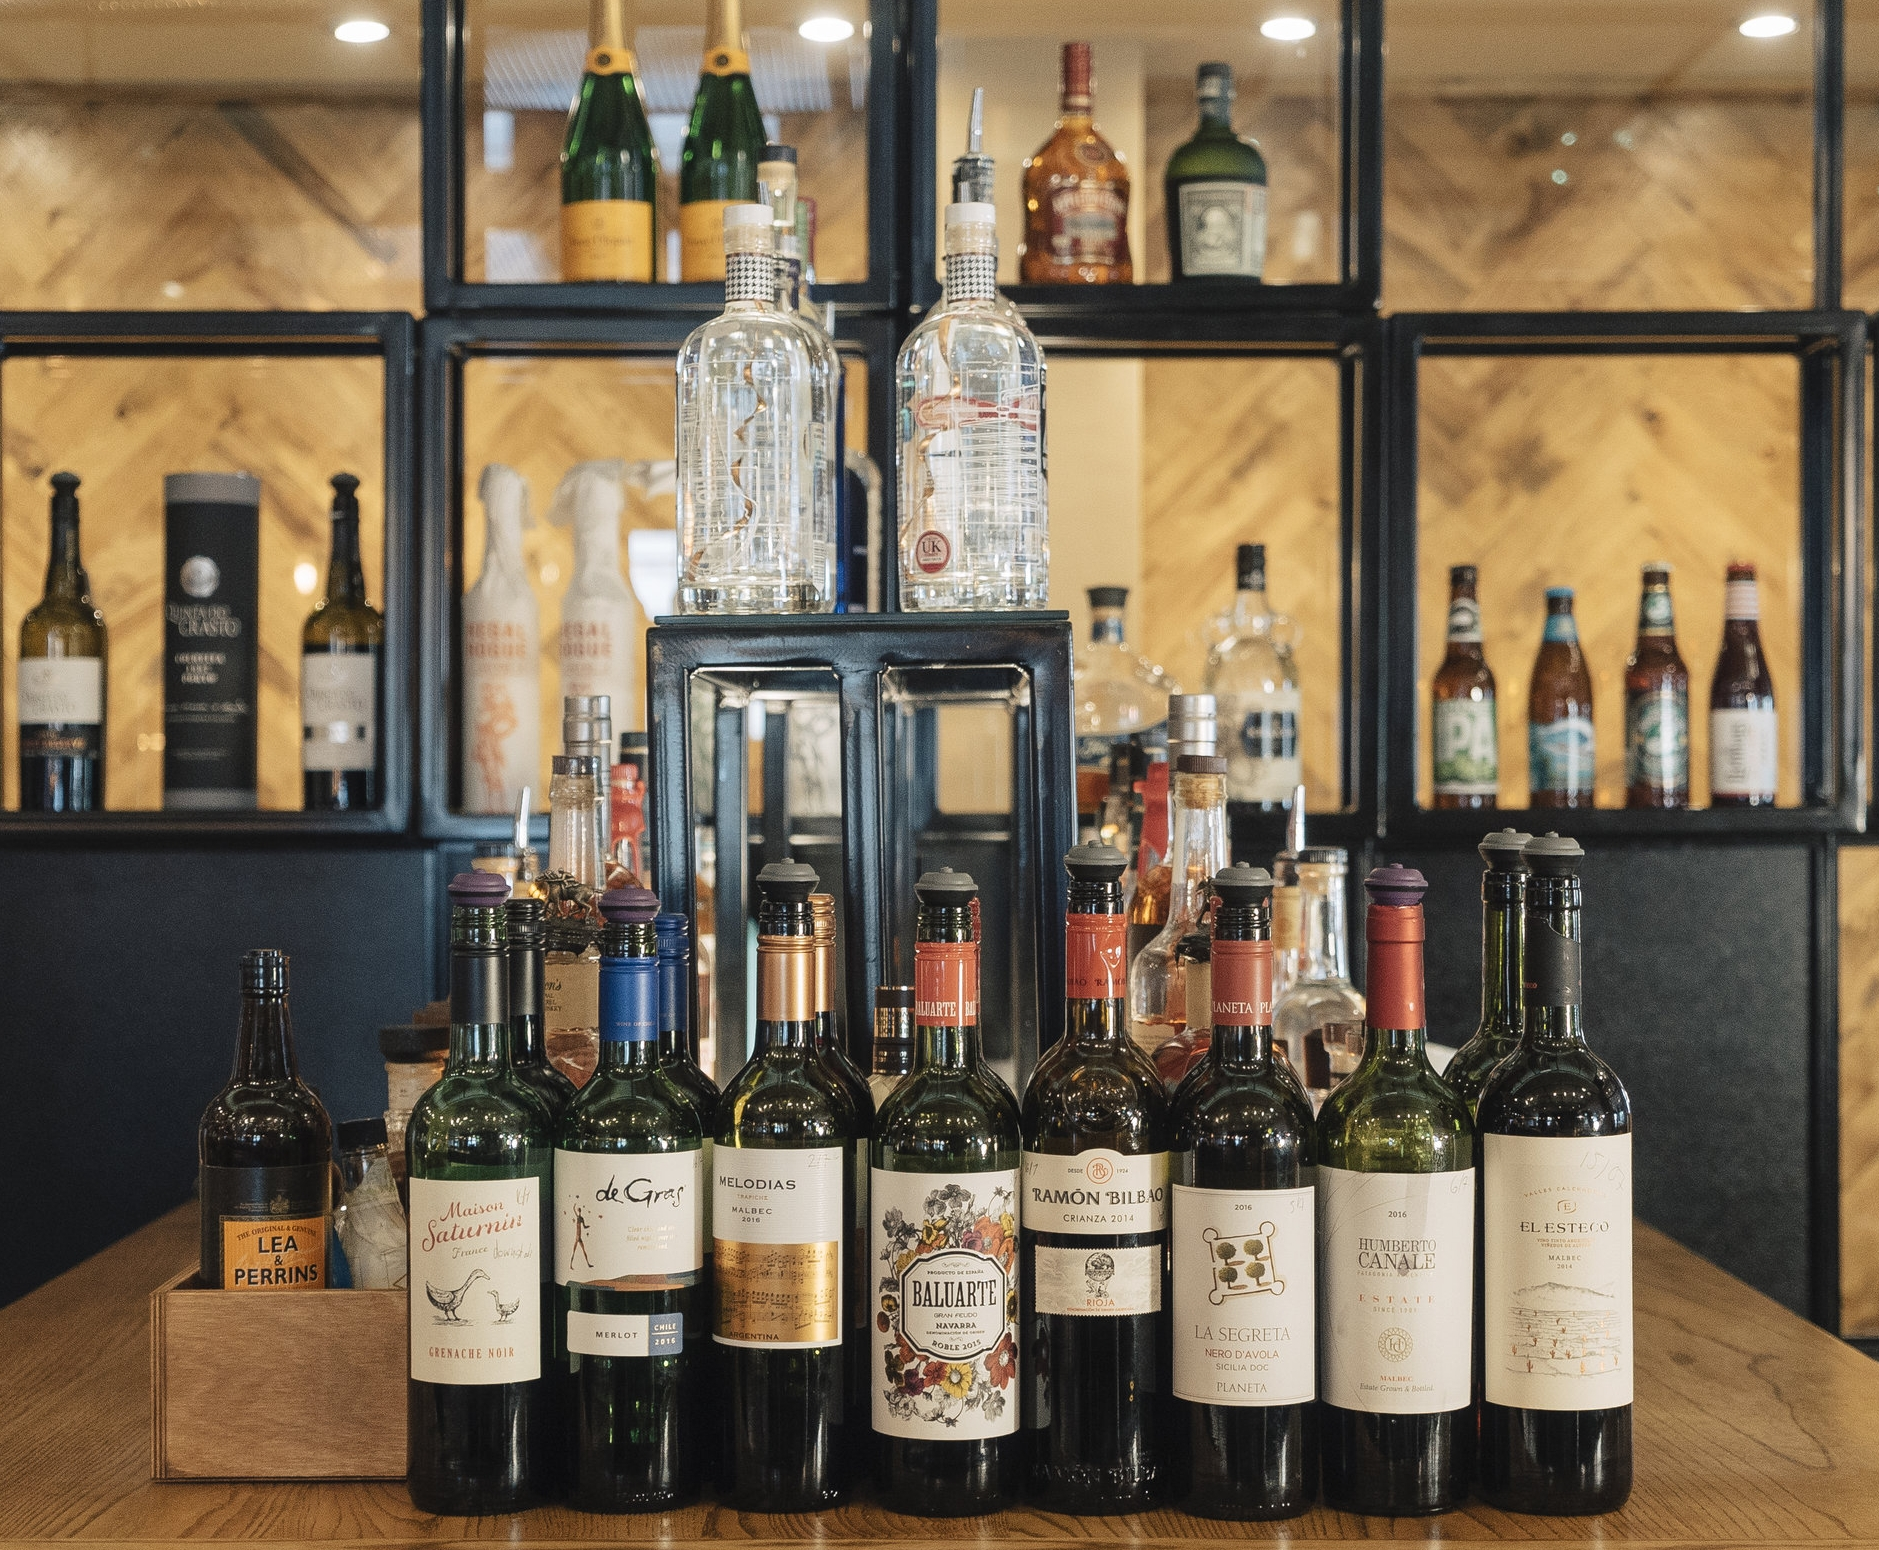 Wine list - Over 35 carefully selected 'Bins' of discovery including three sensational Malbec's from three different Argentinian wine making regions .